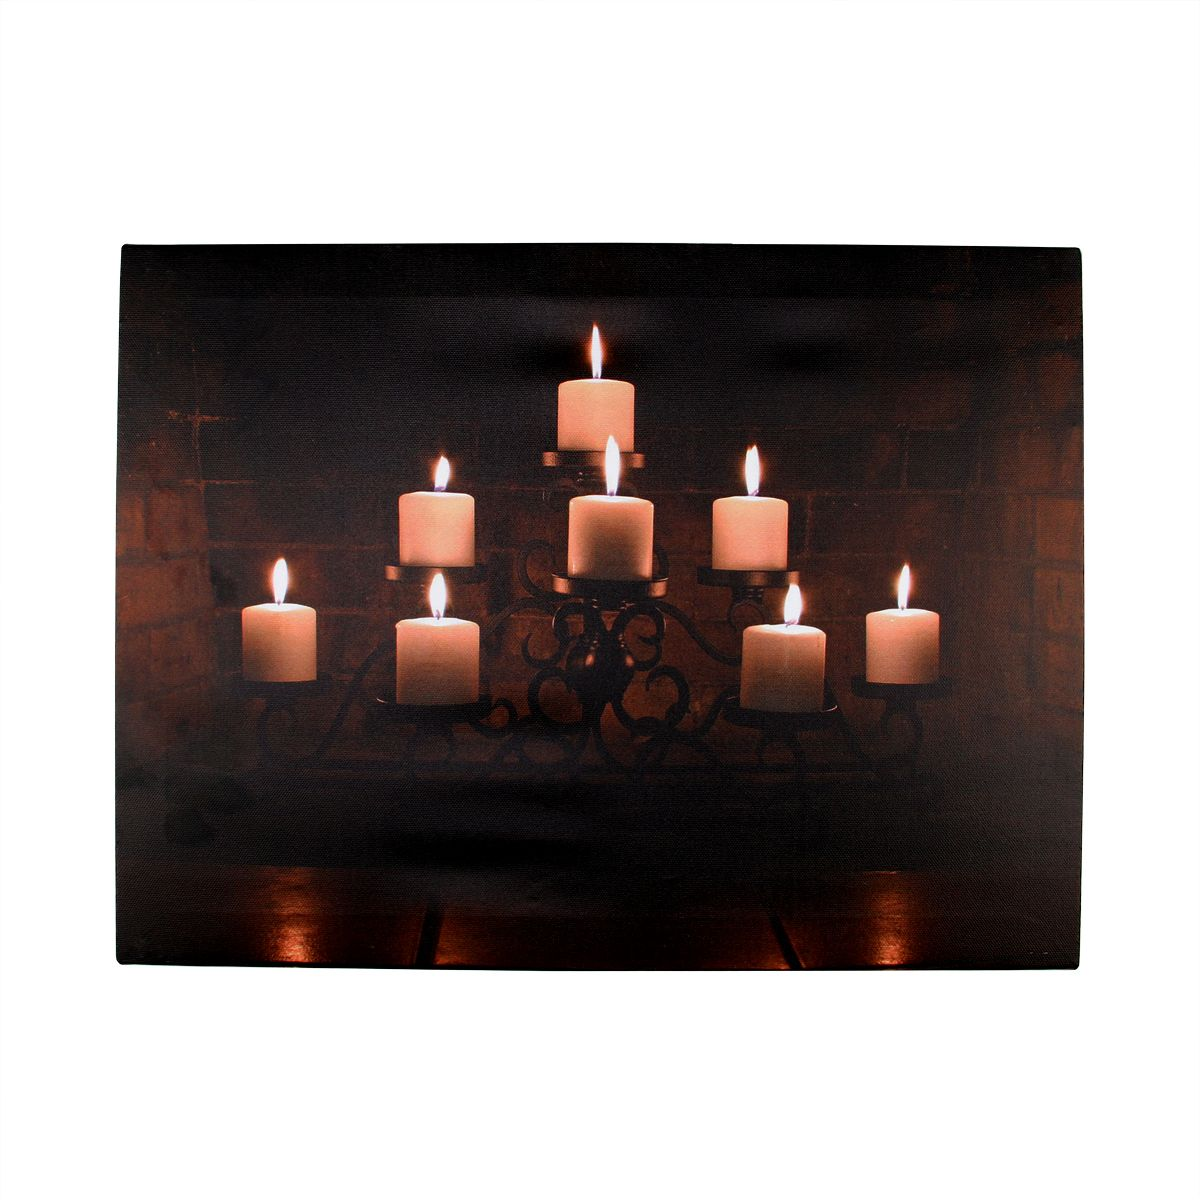 LED Lighted Flickering Rustic Fireplace Candles Canvas ...